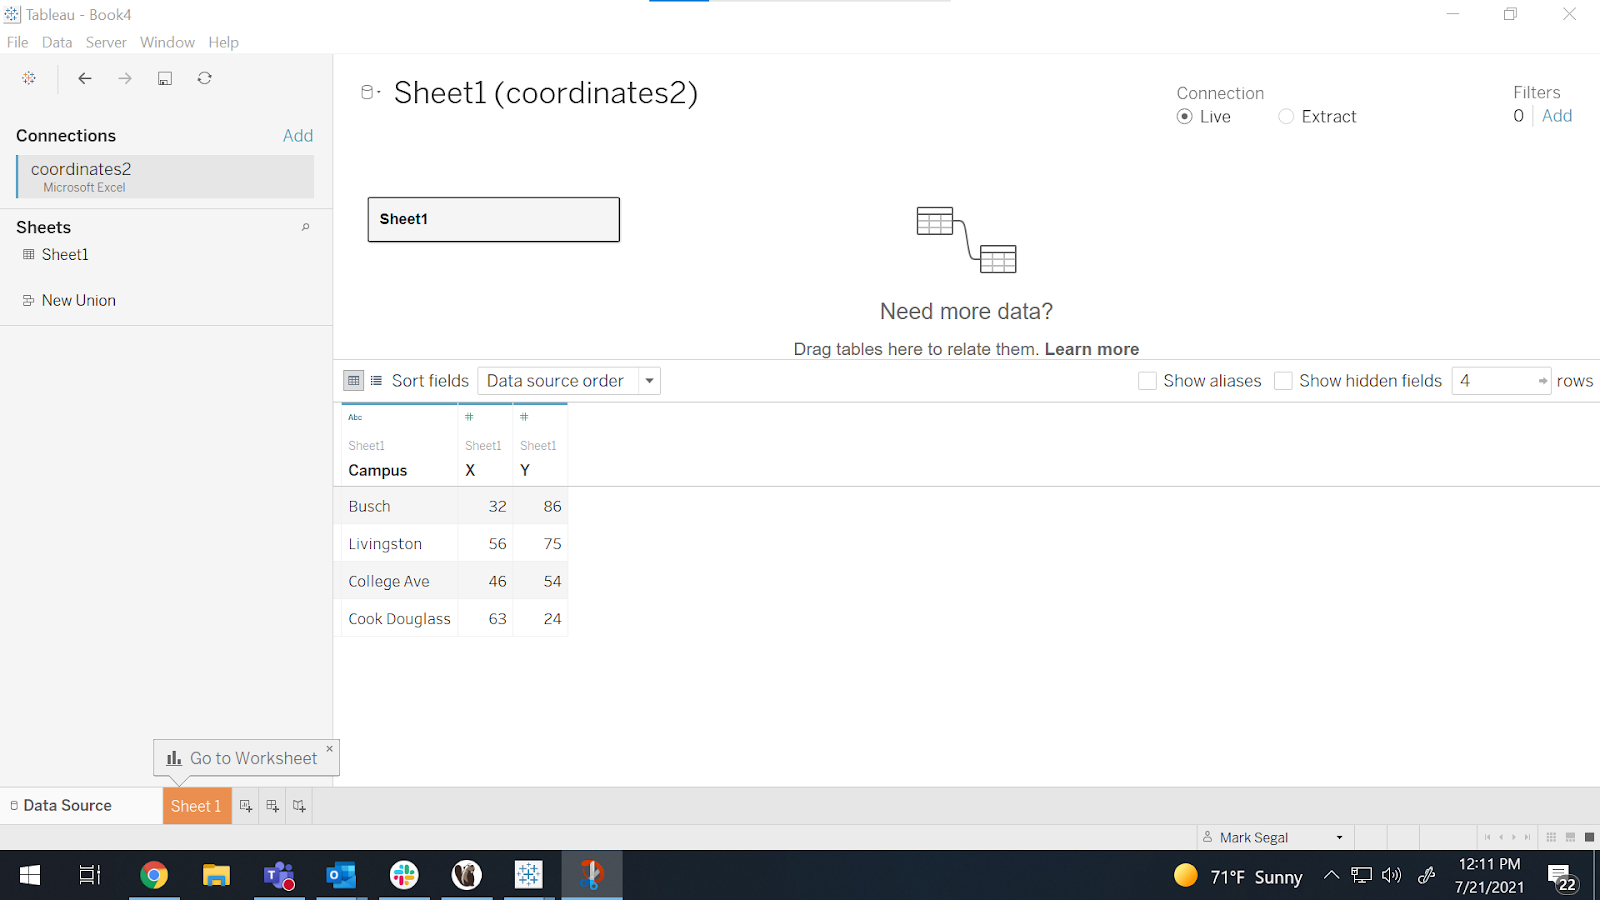 Tableau screenshot presenting the data from the spreadsheet